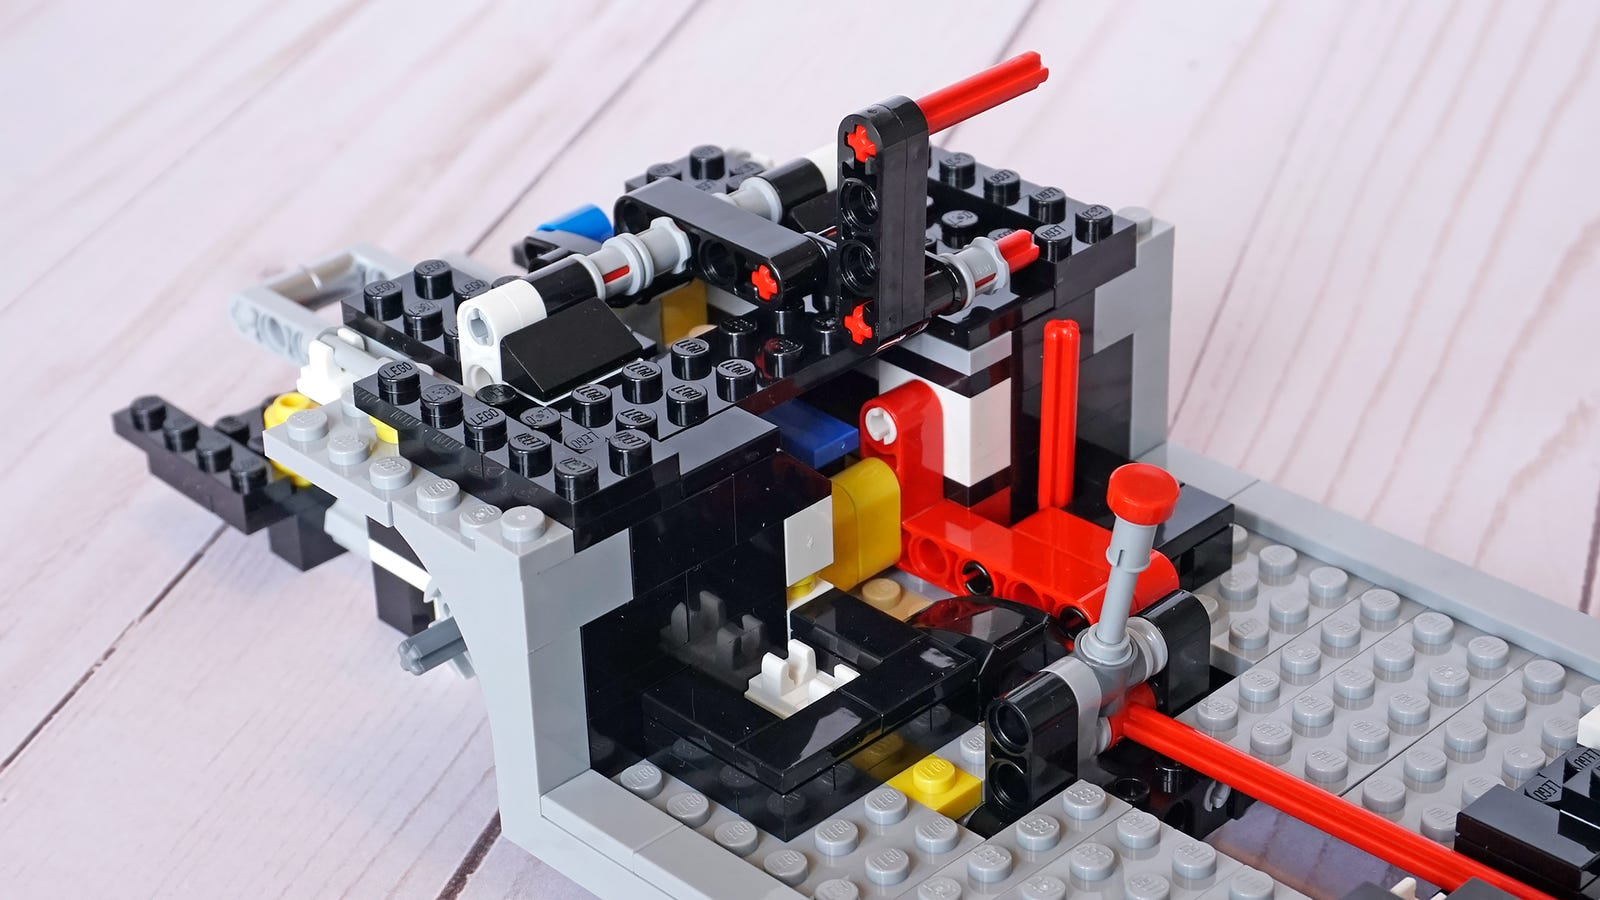 The hidden mechanisms powered by Lego Technic components add a lot of novelty to the model and the build process.